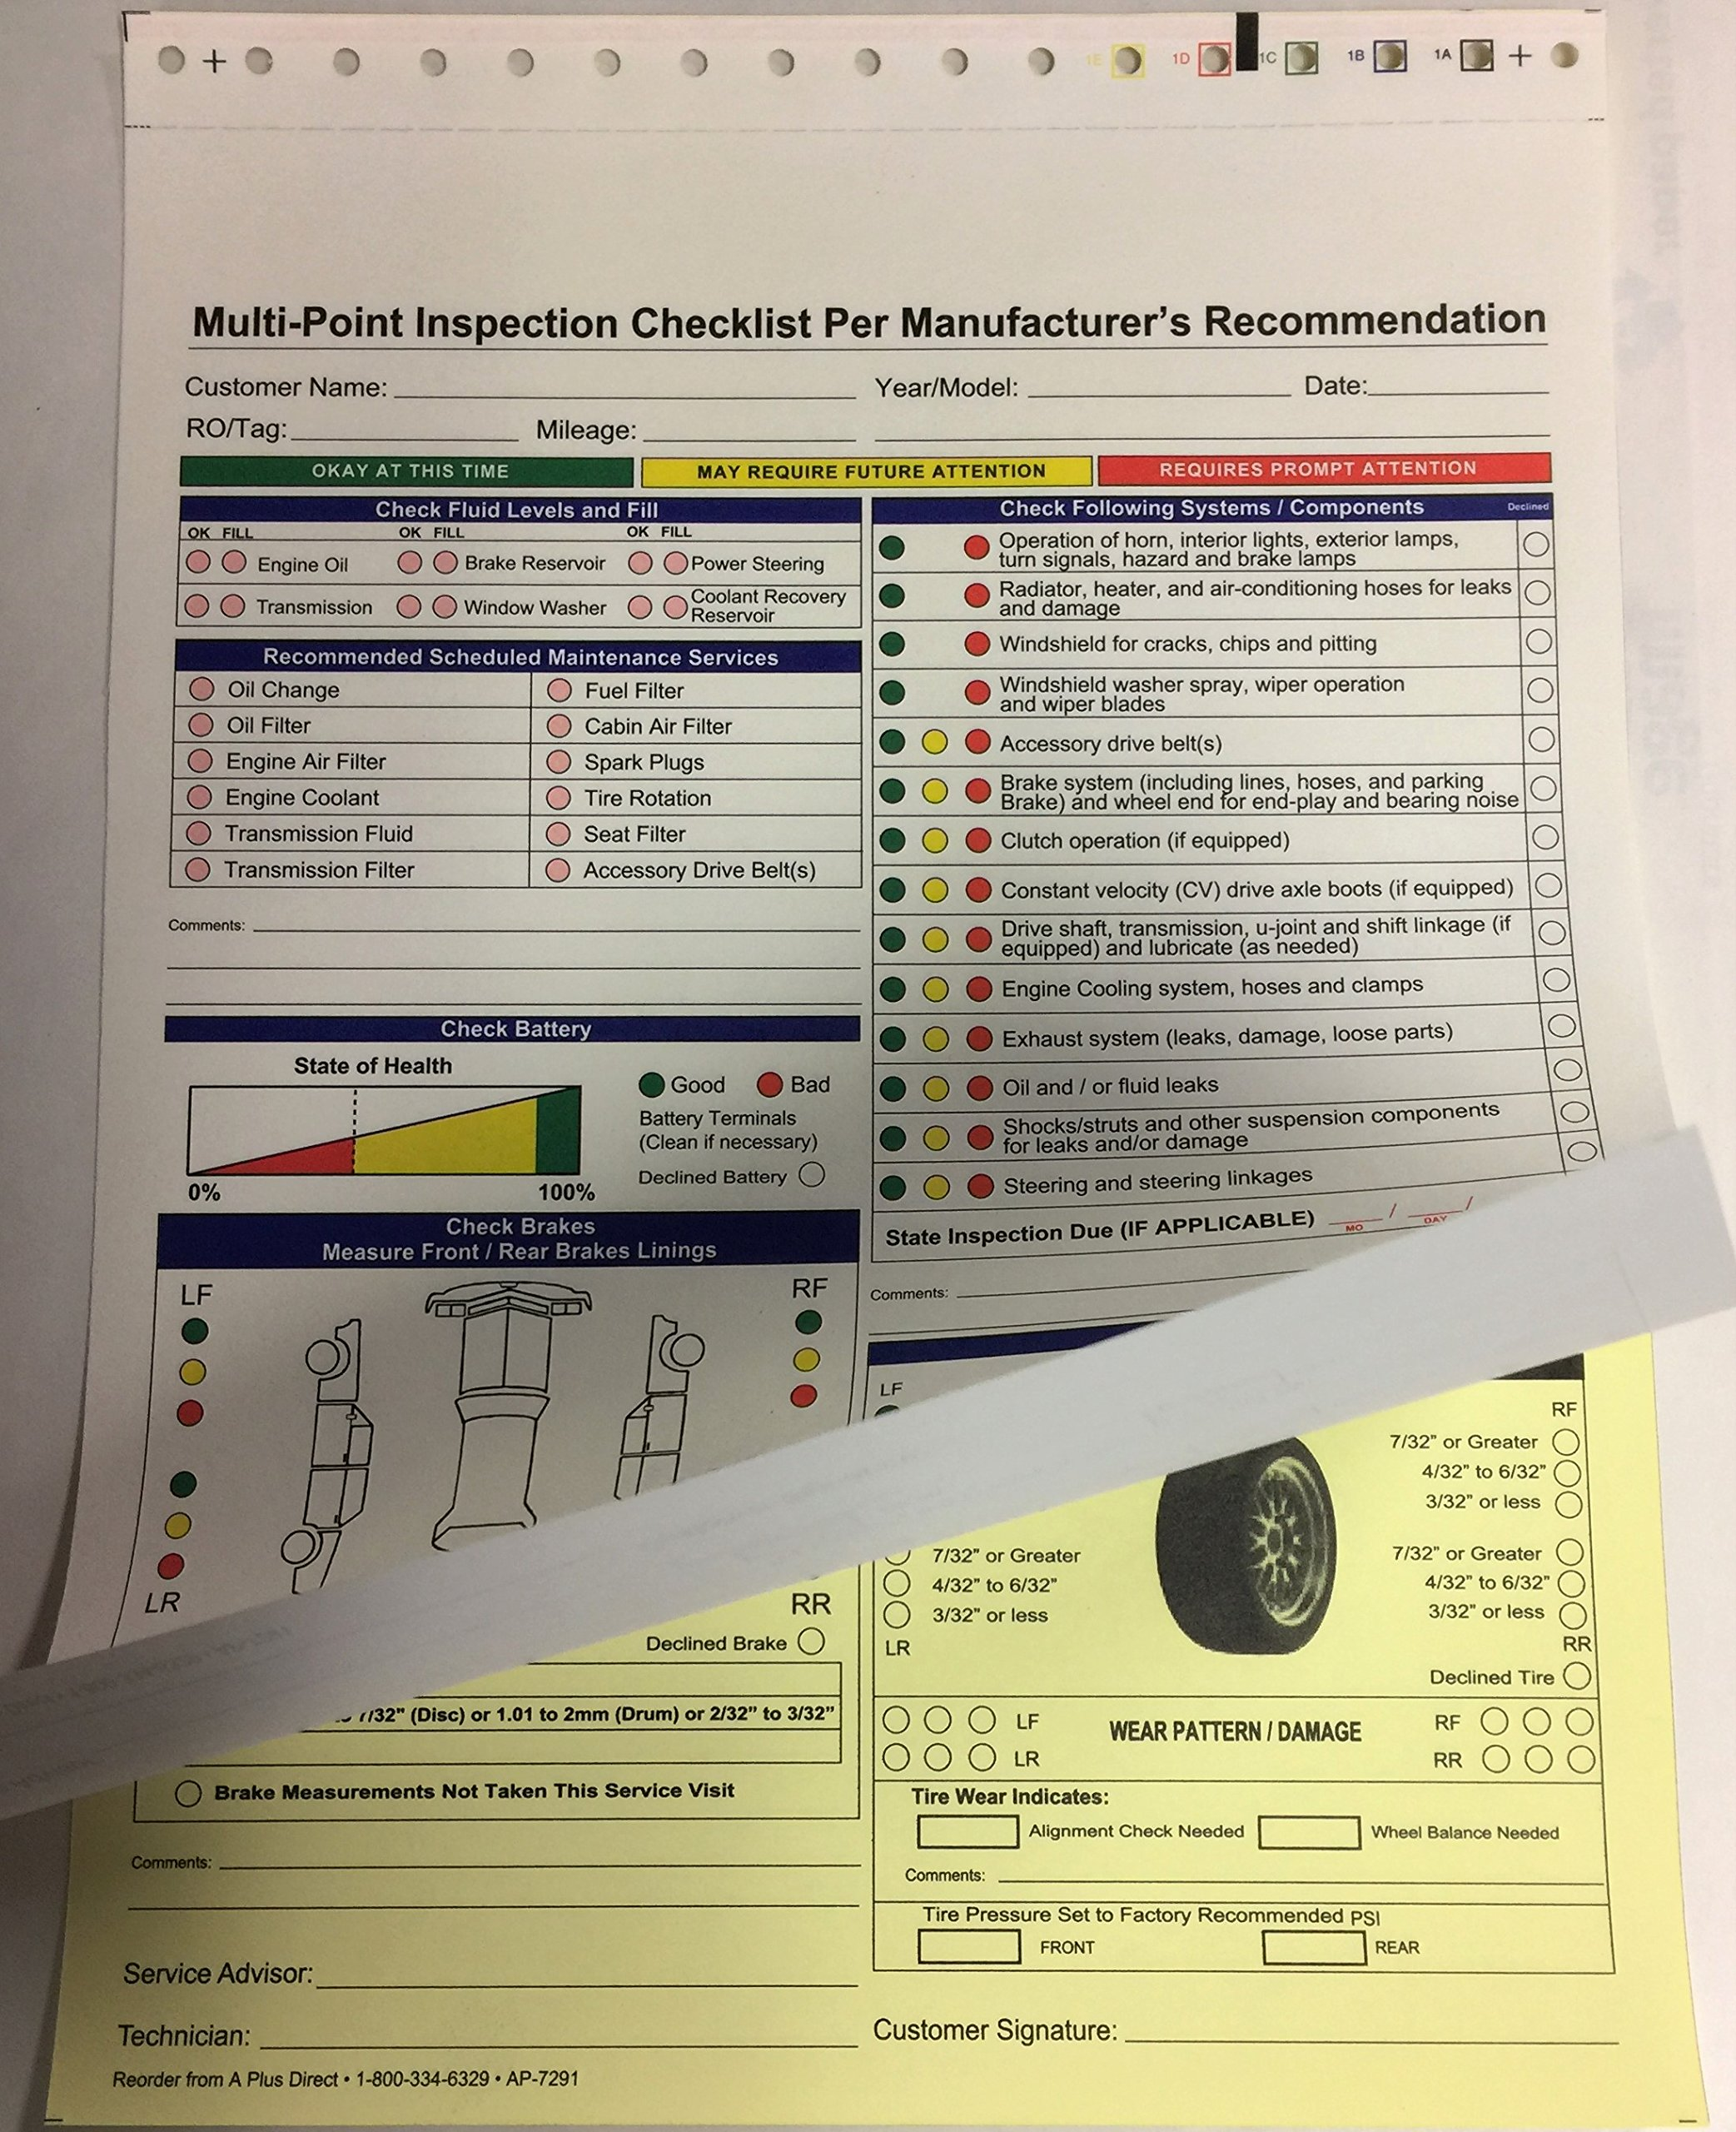 Multi-Point Inspection Forms - (250/pack) 7291 (W15) by A Plus Dealer Supplies (W15) (Image #2)